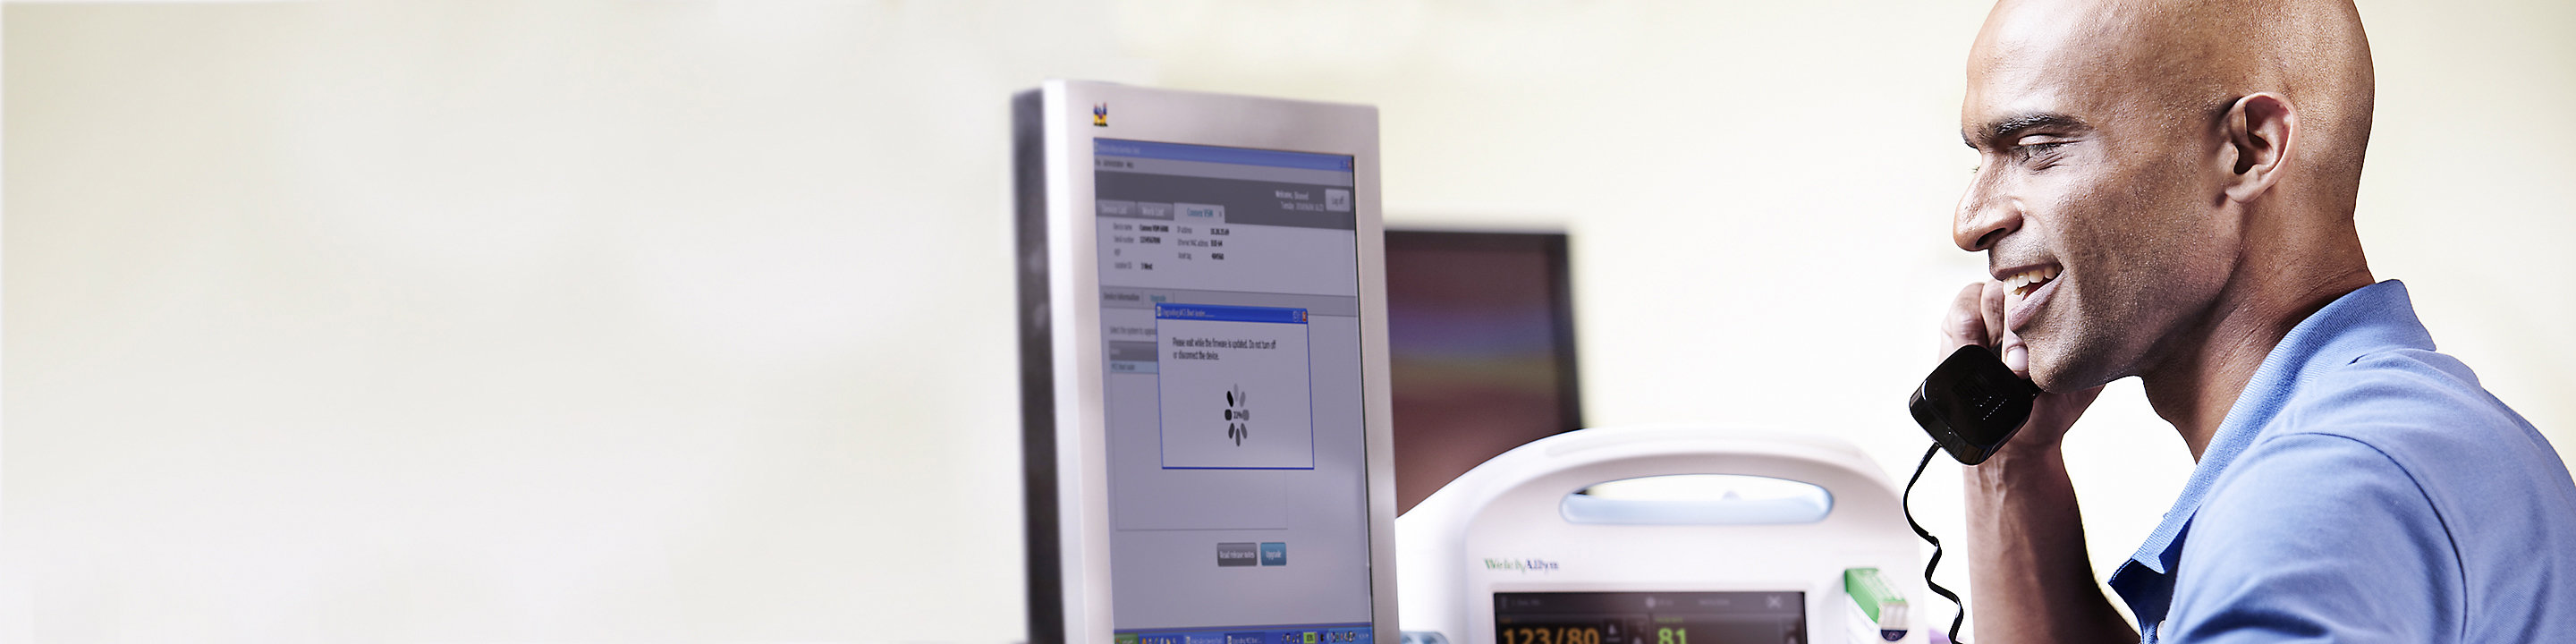 A biomedical engineer taps the Graphical Caregiver Interface (GCI) Touchscreen on a Centrella Smart+ Bed.